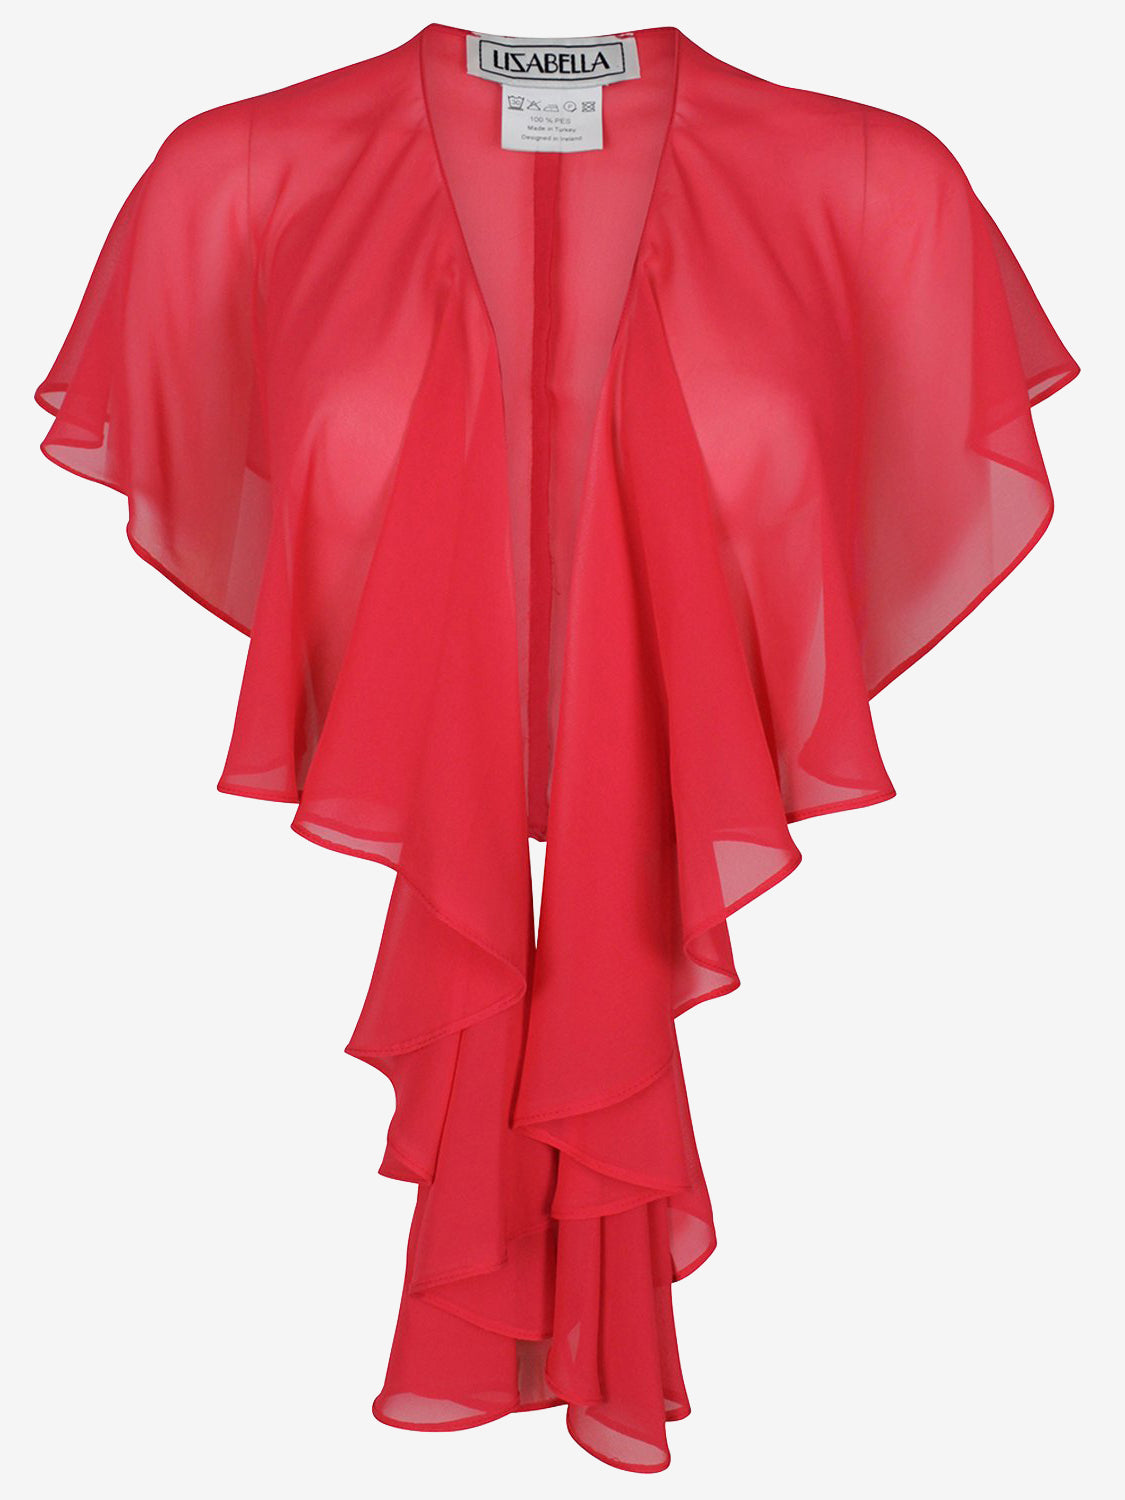 Lizabella Fluted Sheer Shawl Red